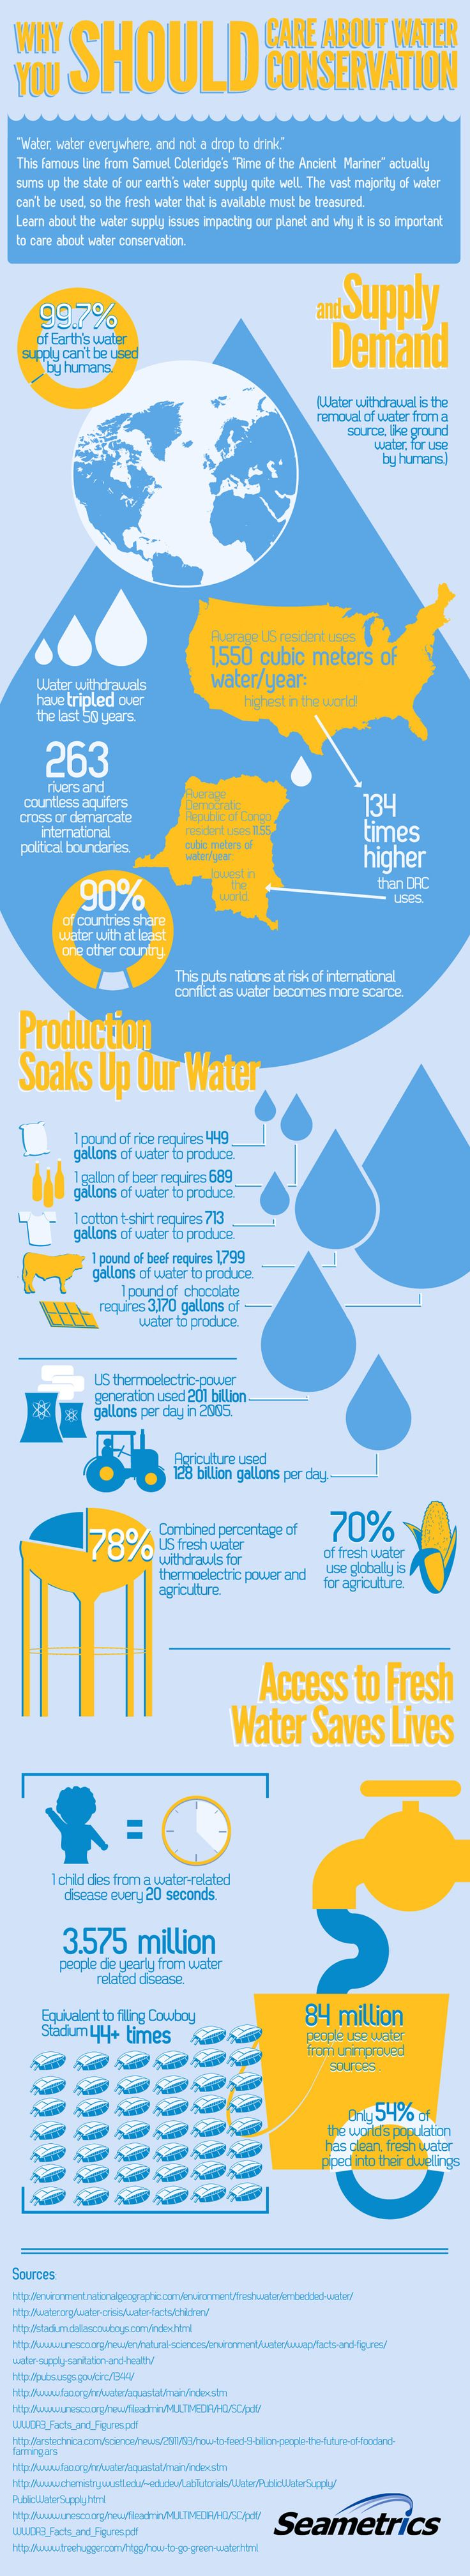 The vast majority of water on our planet can't be used, so the fresh water that's available should be treasured. These are just a few of the water supply issues we face.